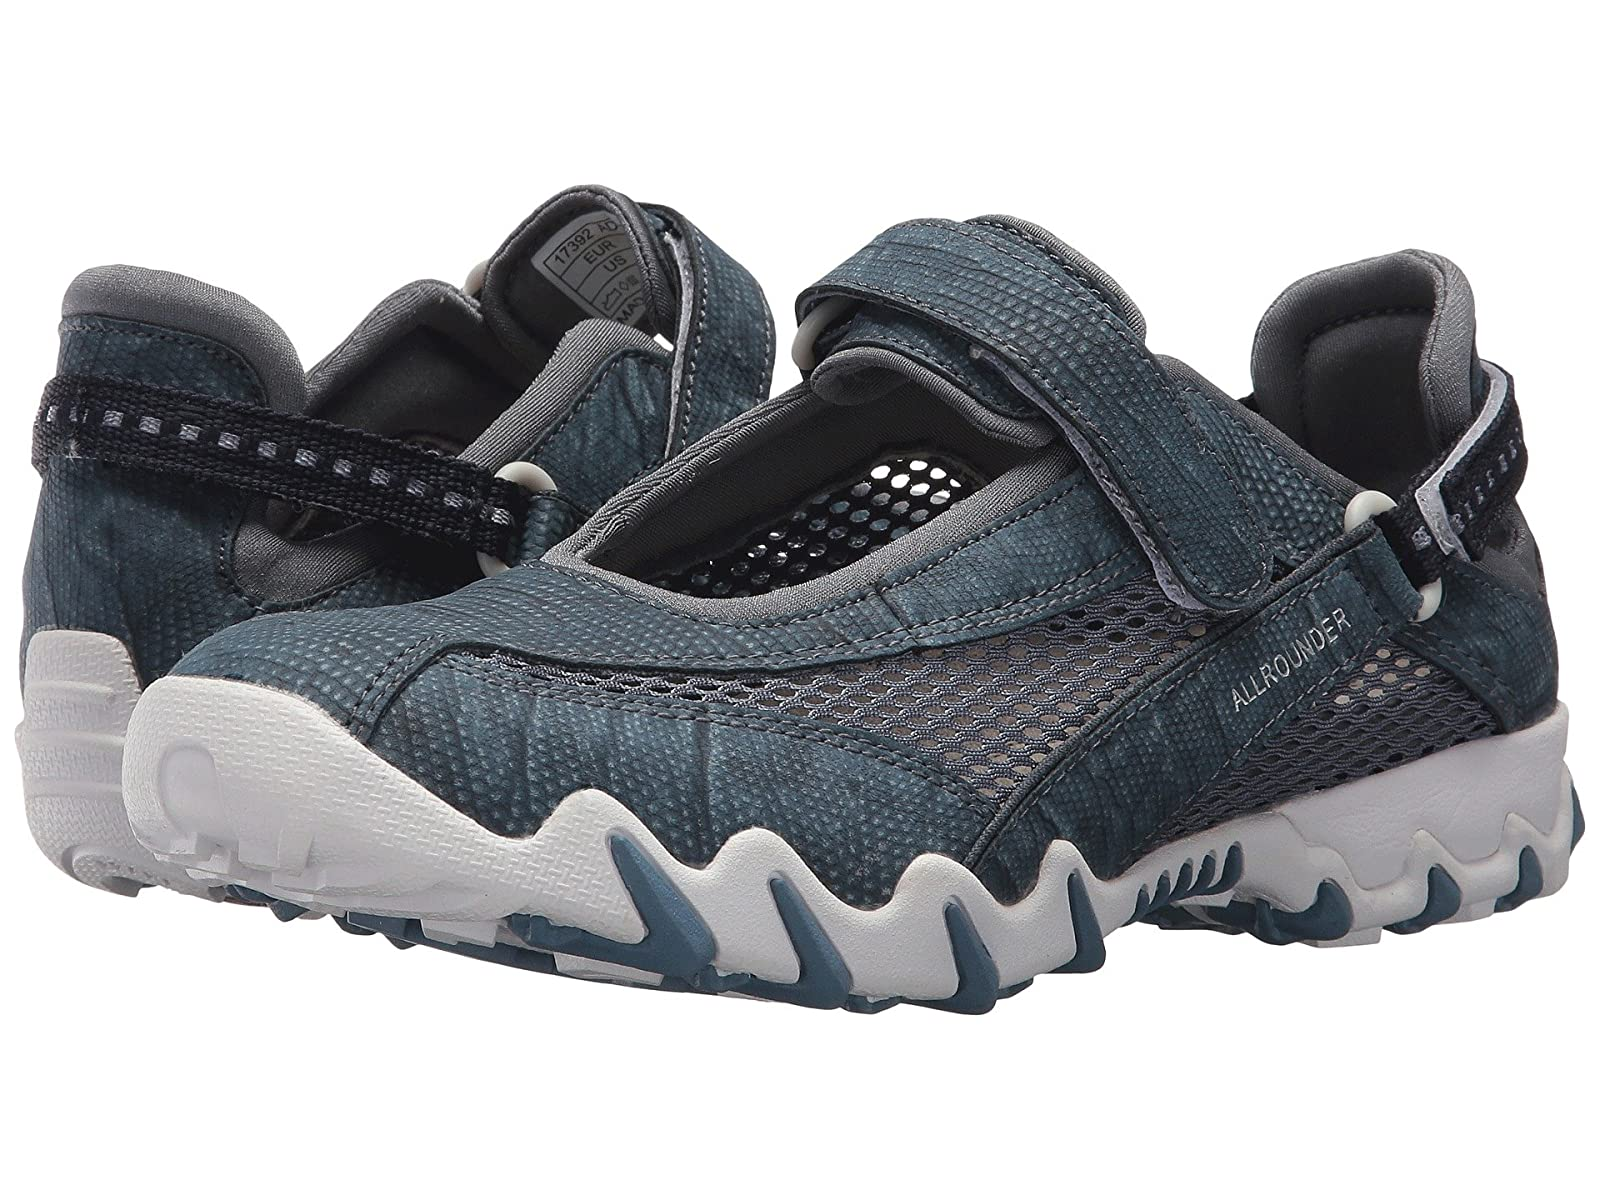 Allrounder by Mephisto NiroAtmospheric grades have affordable shoes